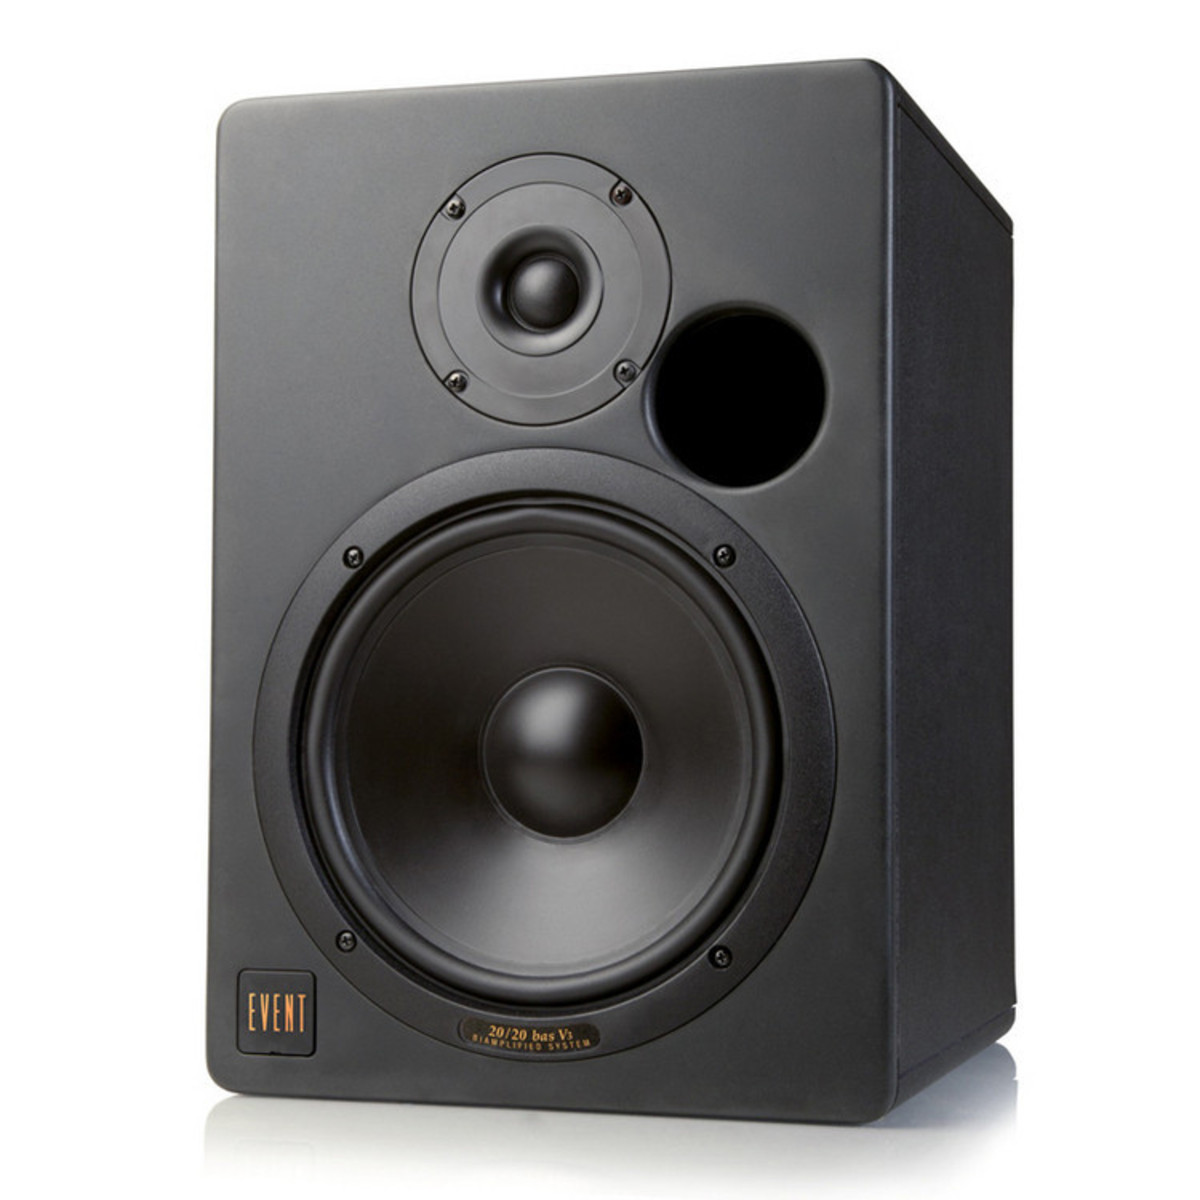 event 20 20 bas v3 active studio monitors single nearly new at. Black Bedroom Furniture Sets. Home Design Ideas